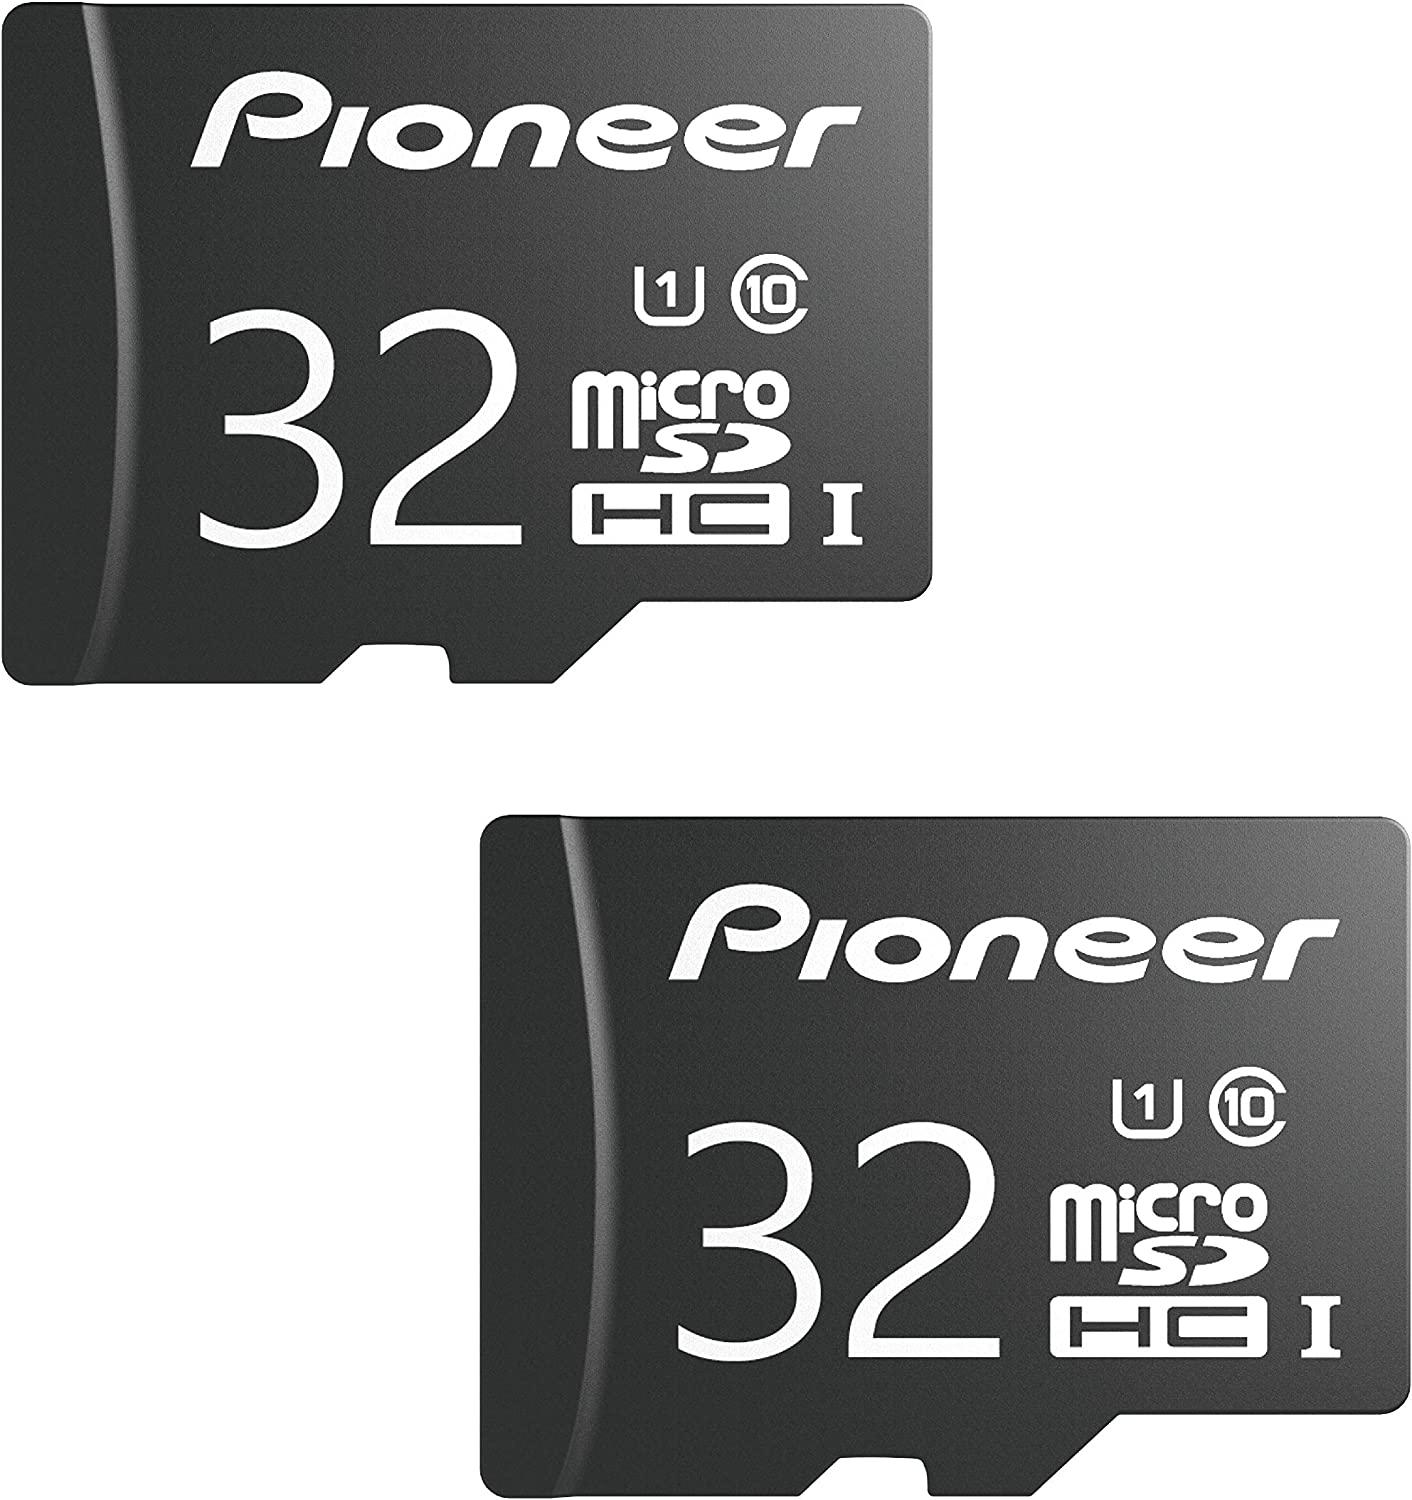 Pioneer 32GB microSD Classic with Adapter - C10, U1, Full HD Memory Card (2 Pack)